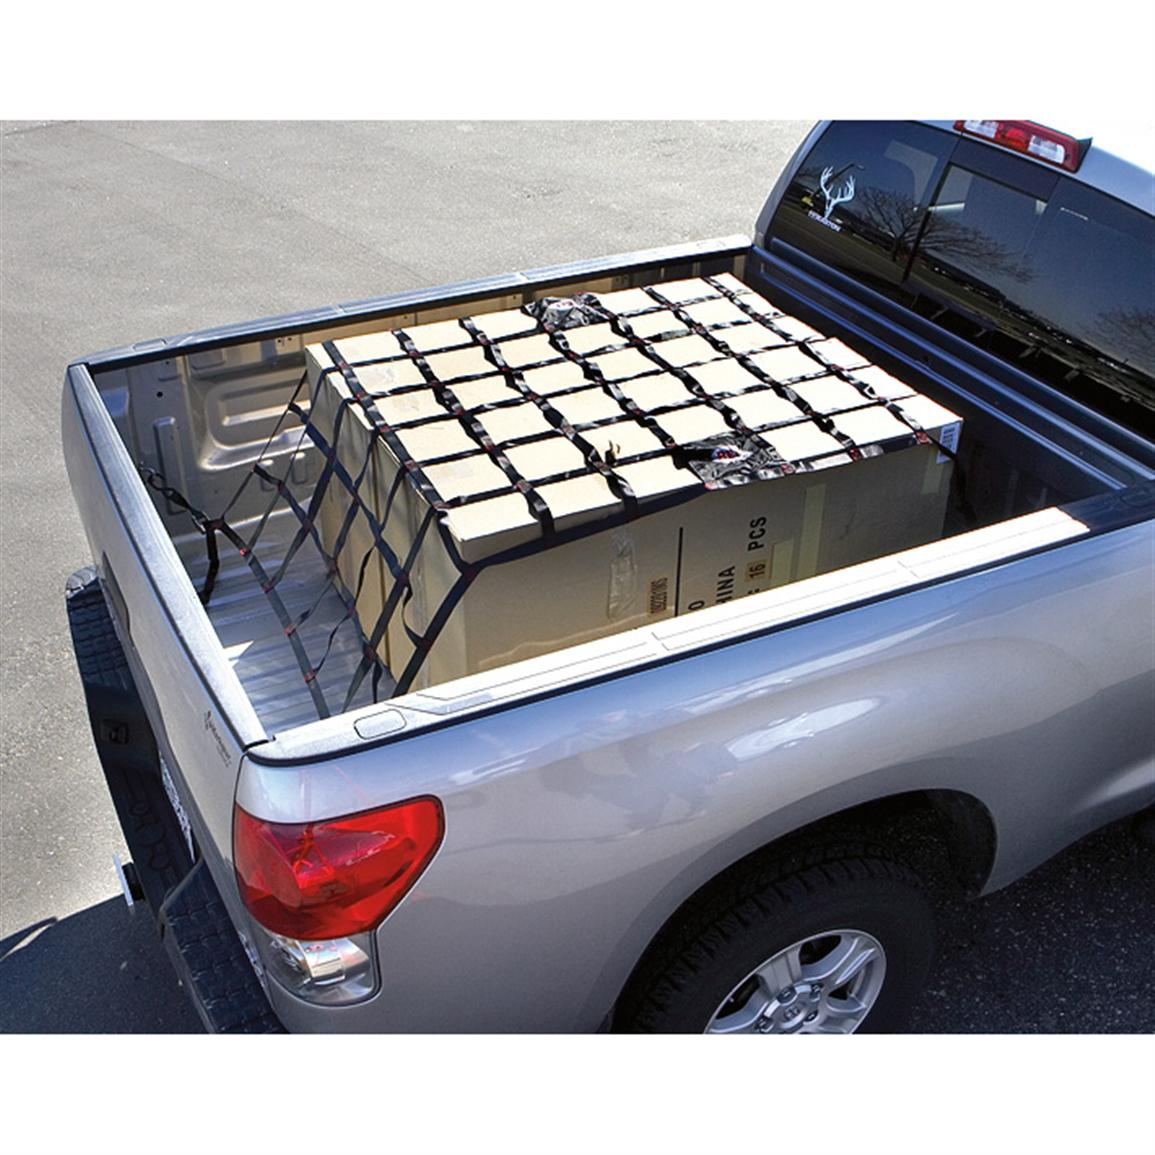 Product additionally Trucks With Caps moreover Wilco Offroad Adv Rack System 9716 additionally Perrycraft Aventura Roof Rack Siderails together with Access Adarac Truck Rack. on cargo roof racks for trucks